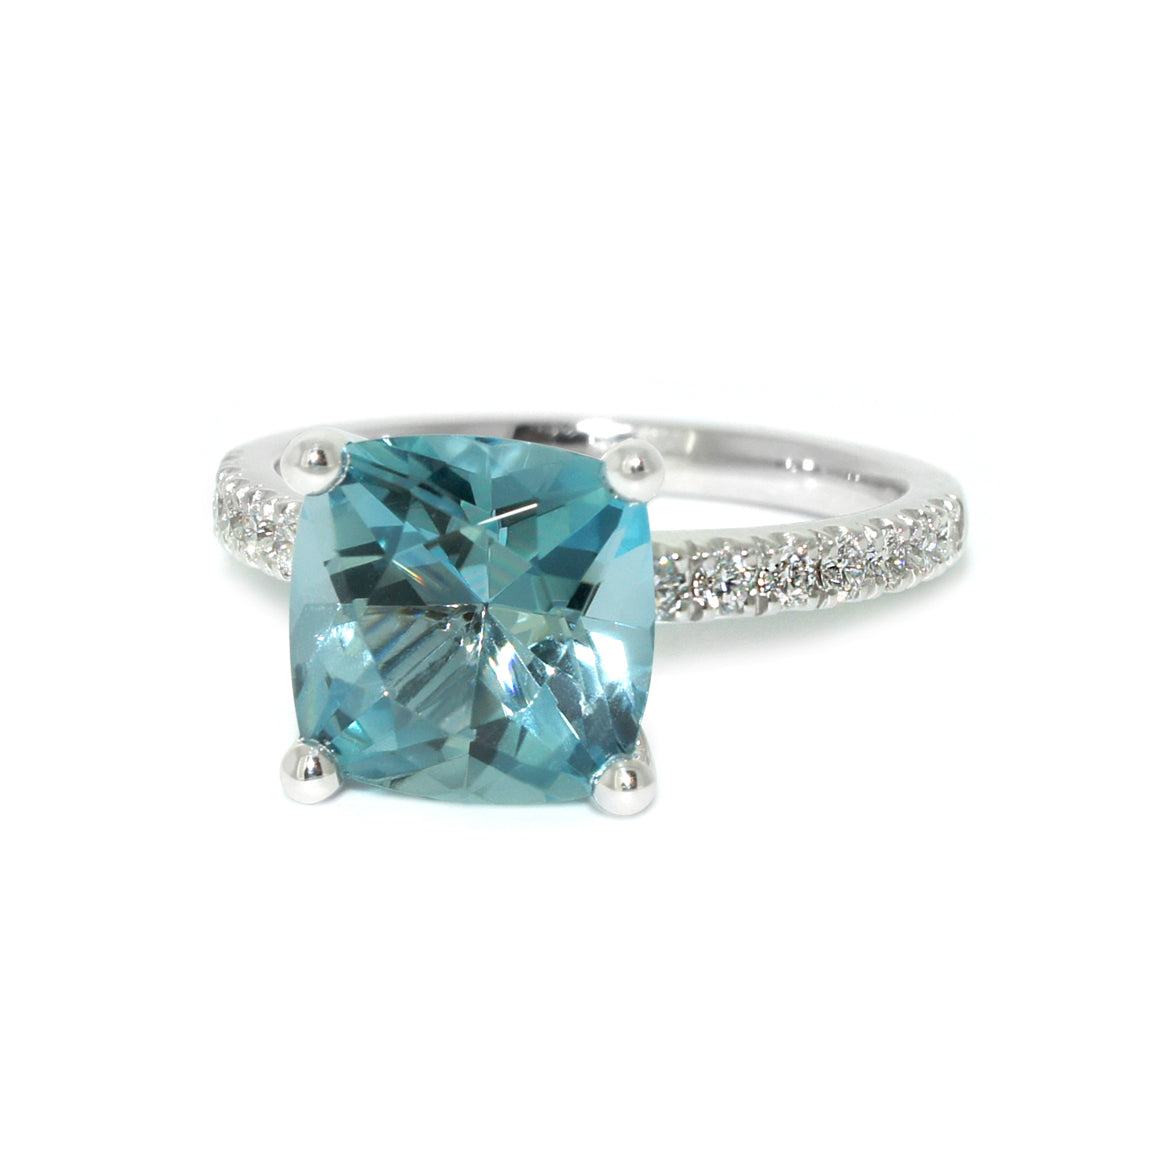 custom-made-engagement-ring-diamonds-white-gold-aquamarine-by-sydney-cbd-jewellers-lizunova